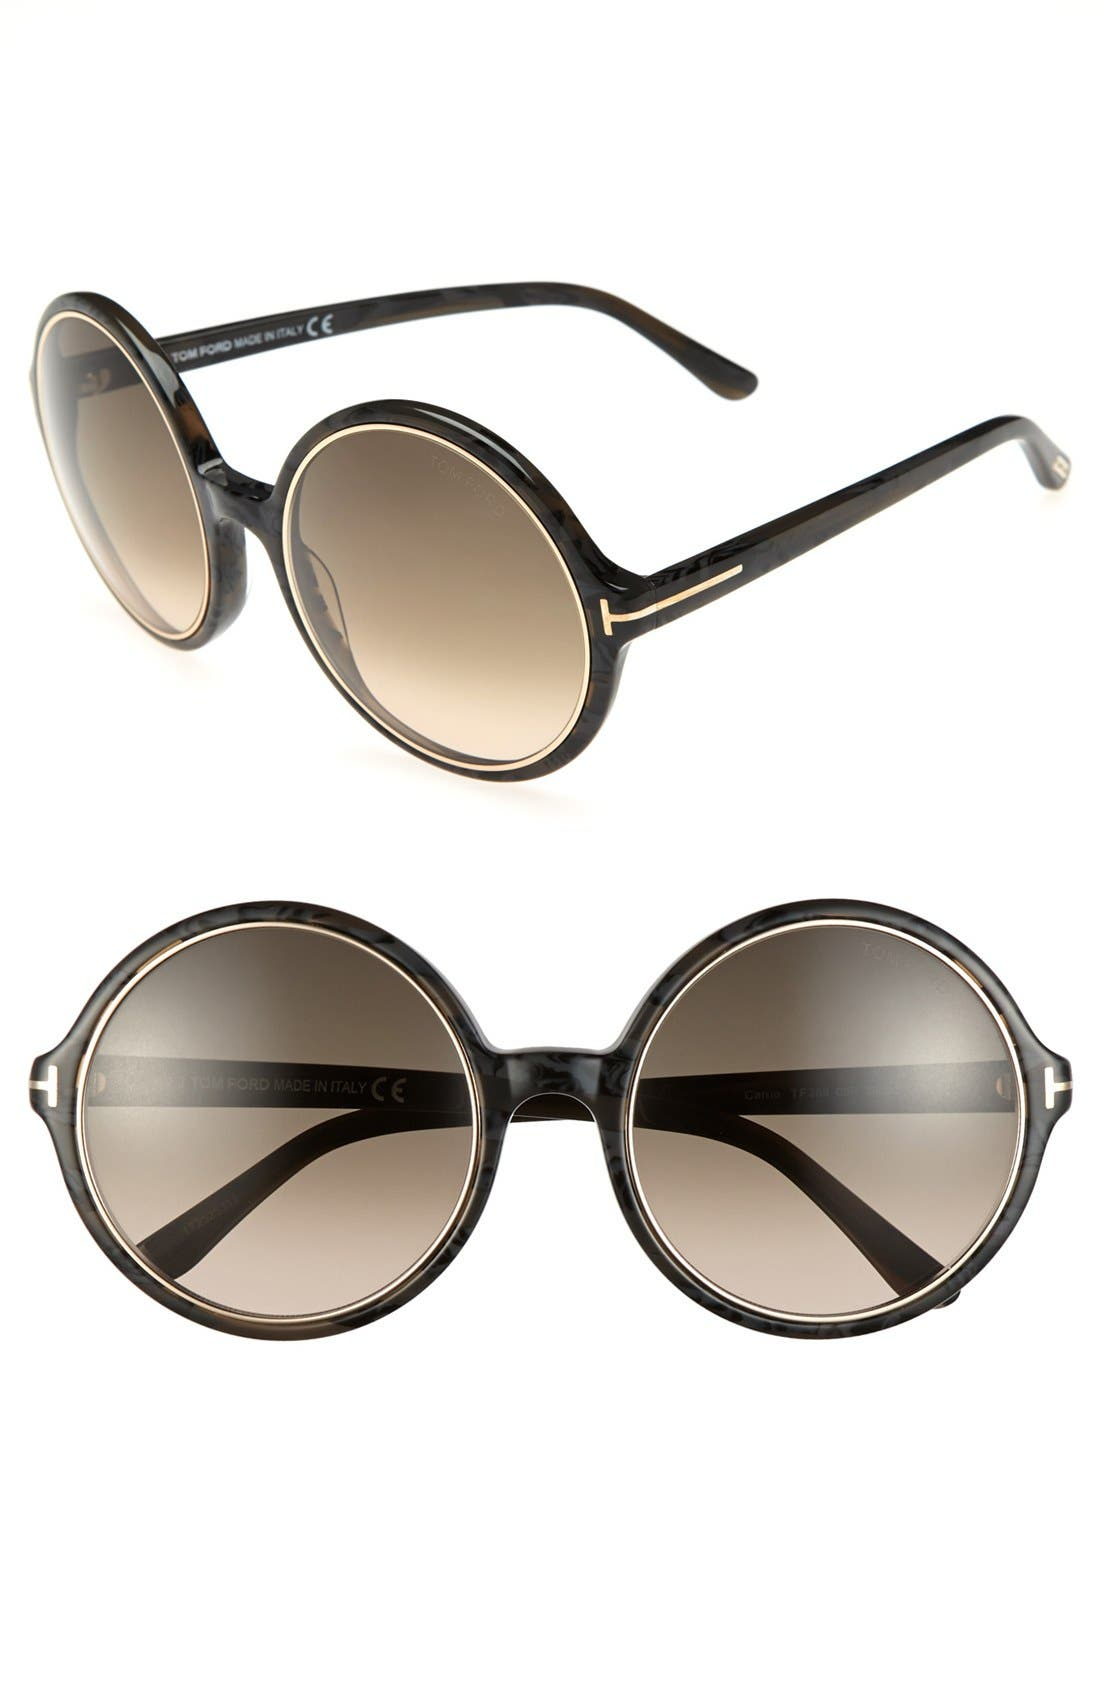 Main Image - Tom Ford 'Carrie' 59mm Sunglasses